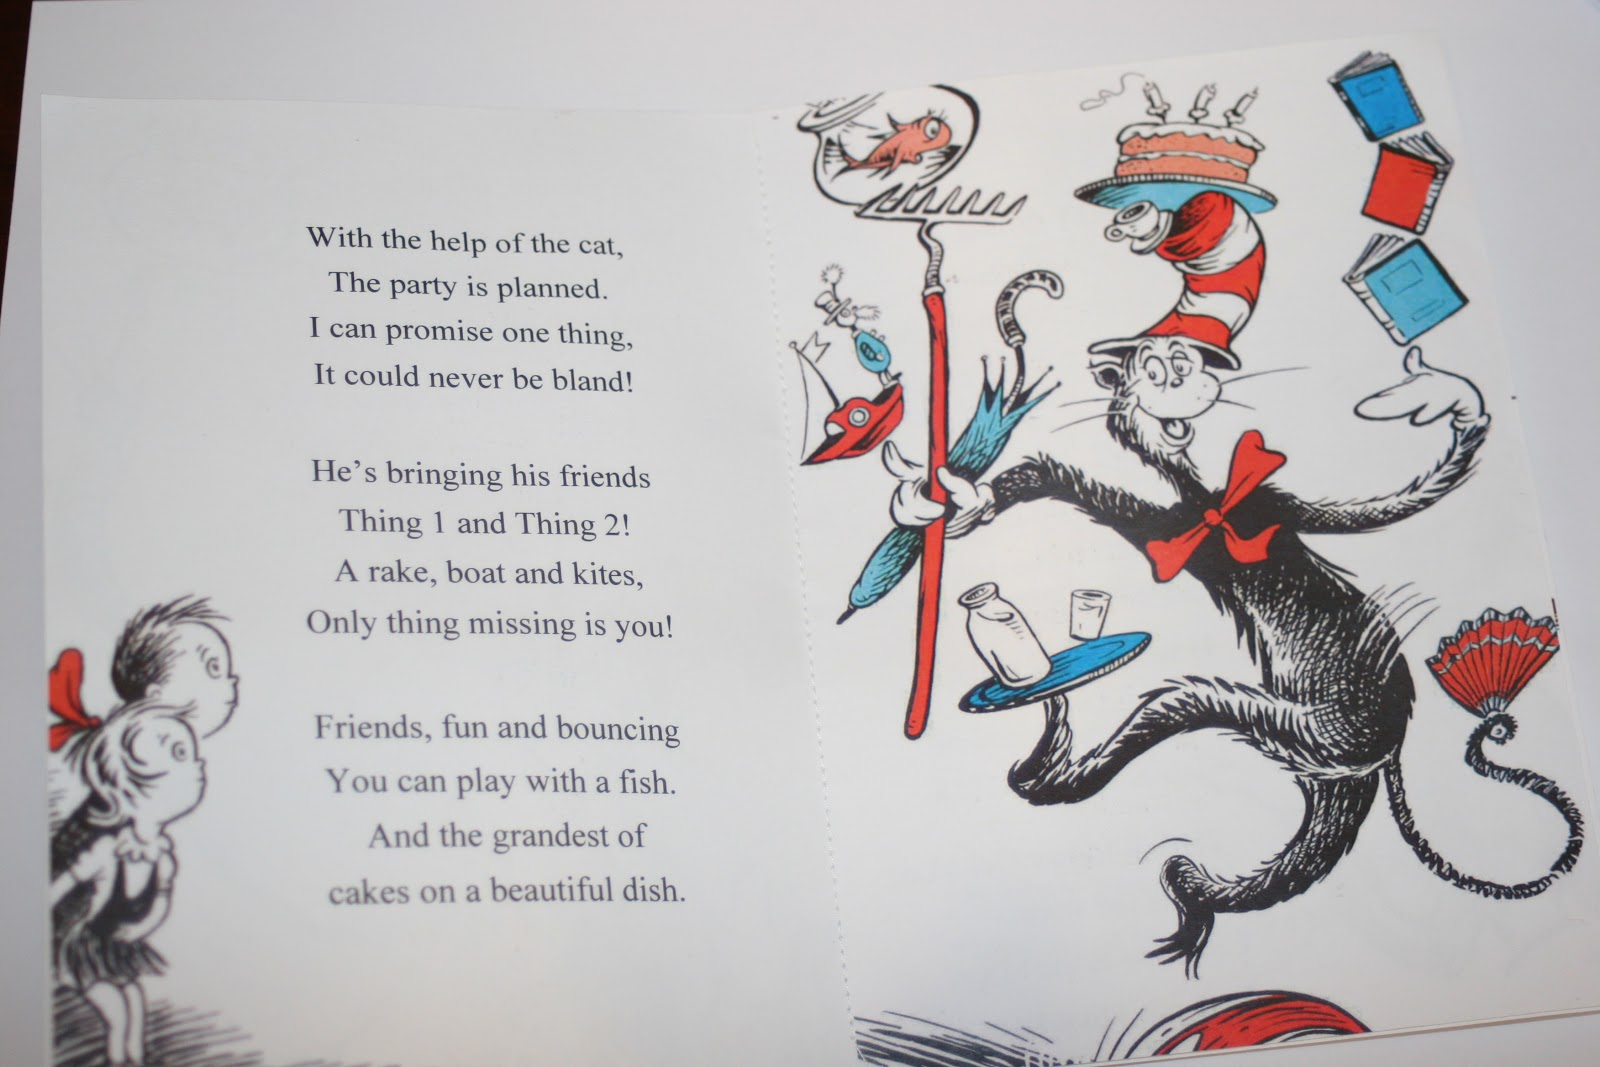 Greene Acres Hobby Farm: Dr. Seuss Cat in the Hat Birthday Party